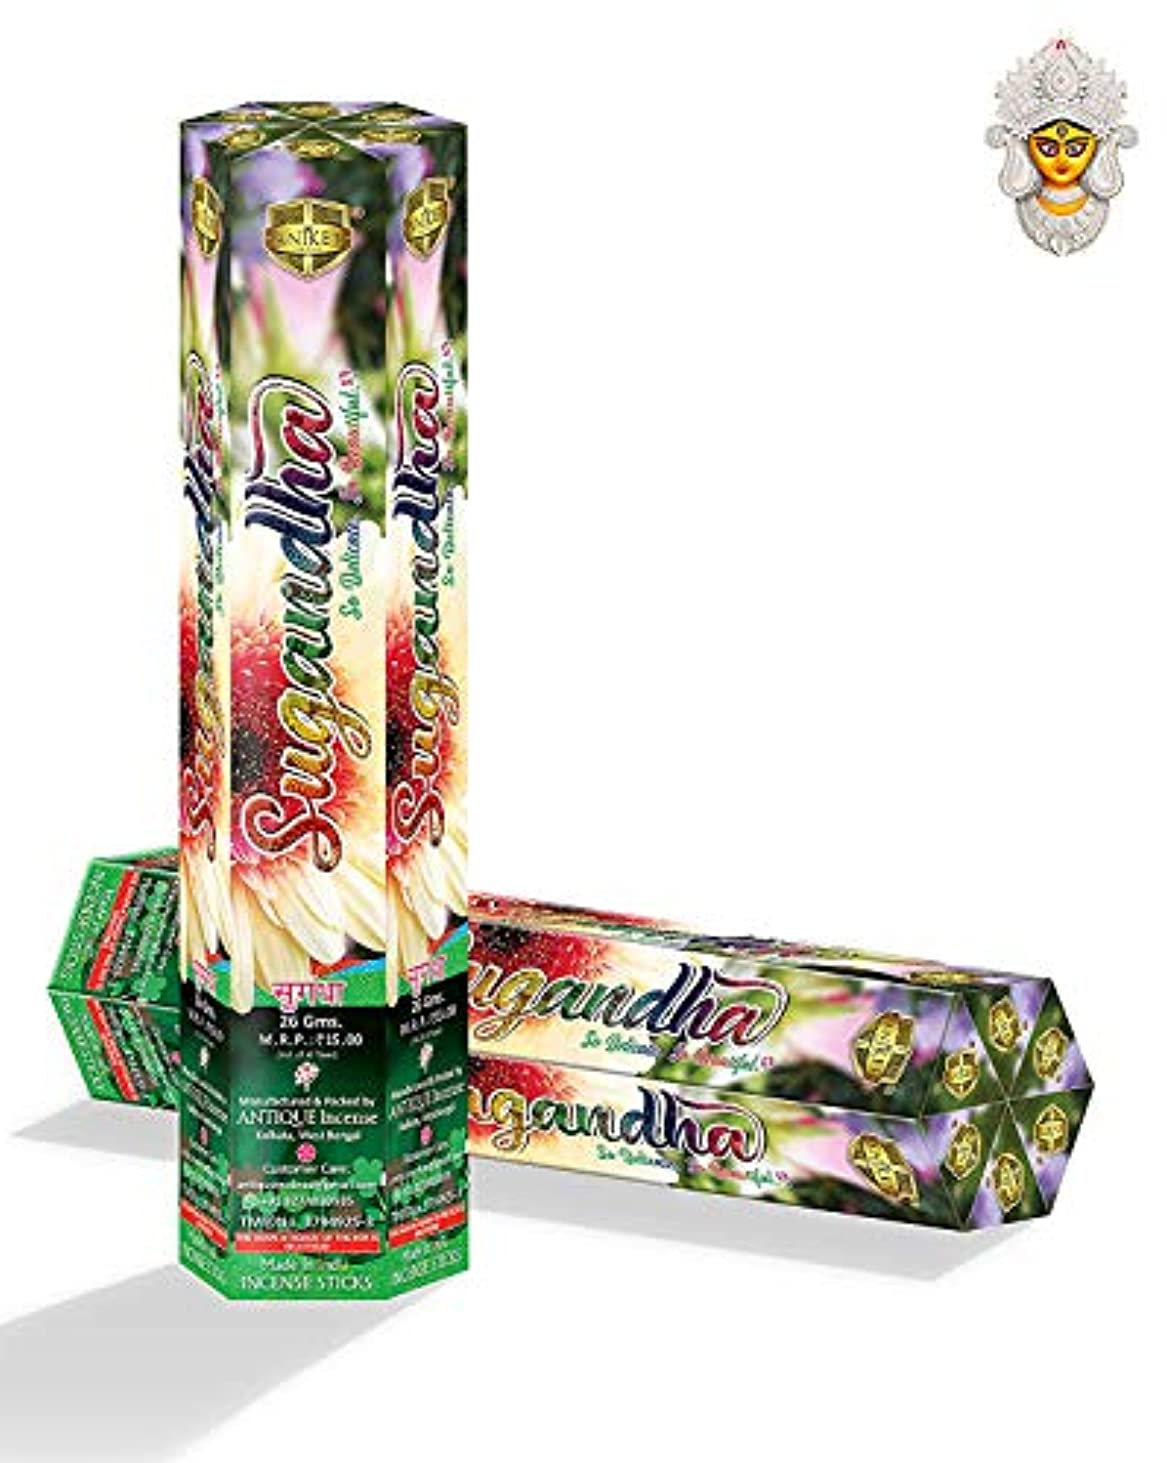 主観的里親豊富にSUGANDHA Sweet & Pleasant Fruity Fragrance Incense Sticks for Pooja (Moisture Proof Pack of 12)